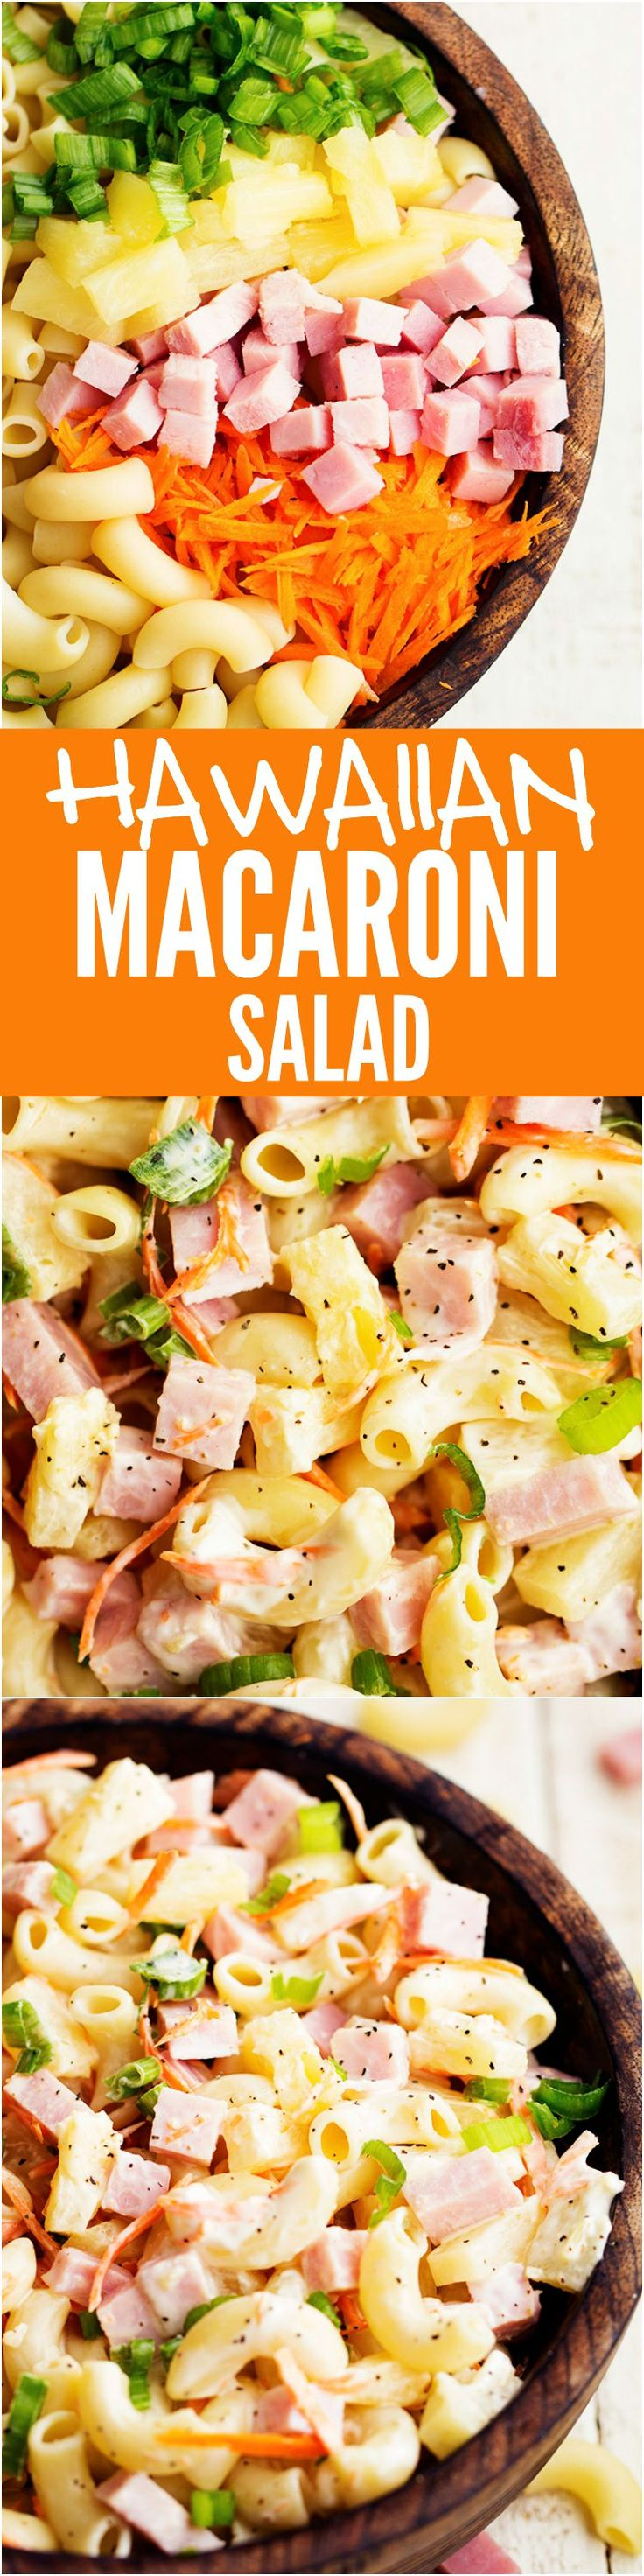 Hawaiian Macaroni Salad - Has ham and pineapple hidden inside and the pineapple dressing is the BEST part!